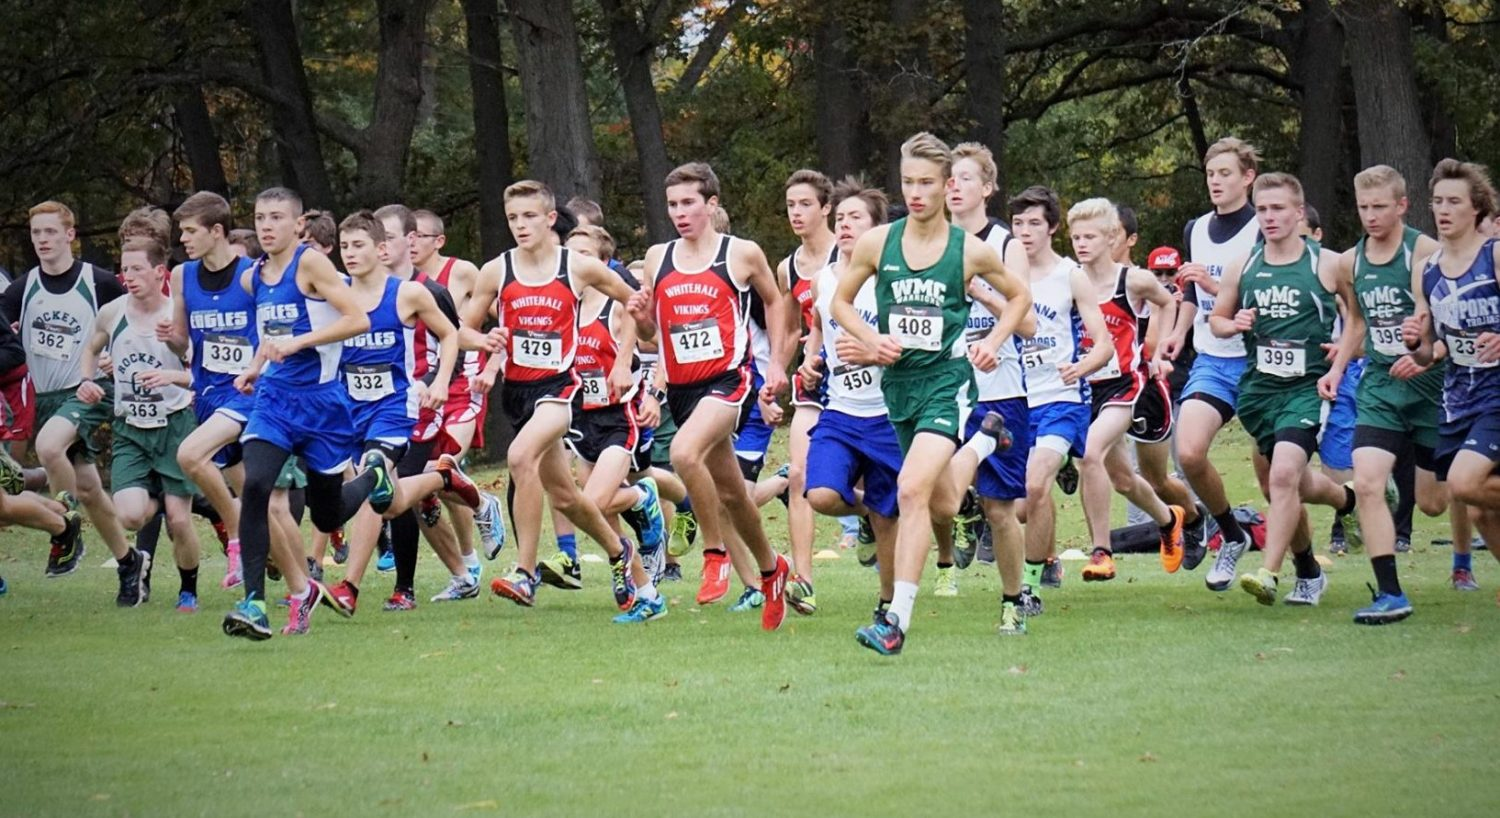 Fremont boys cross country team runs away with Division 2 state championship